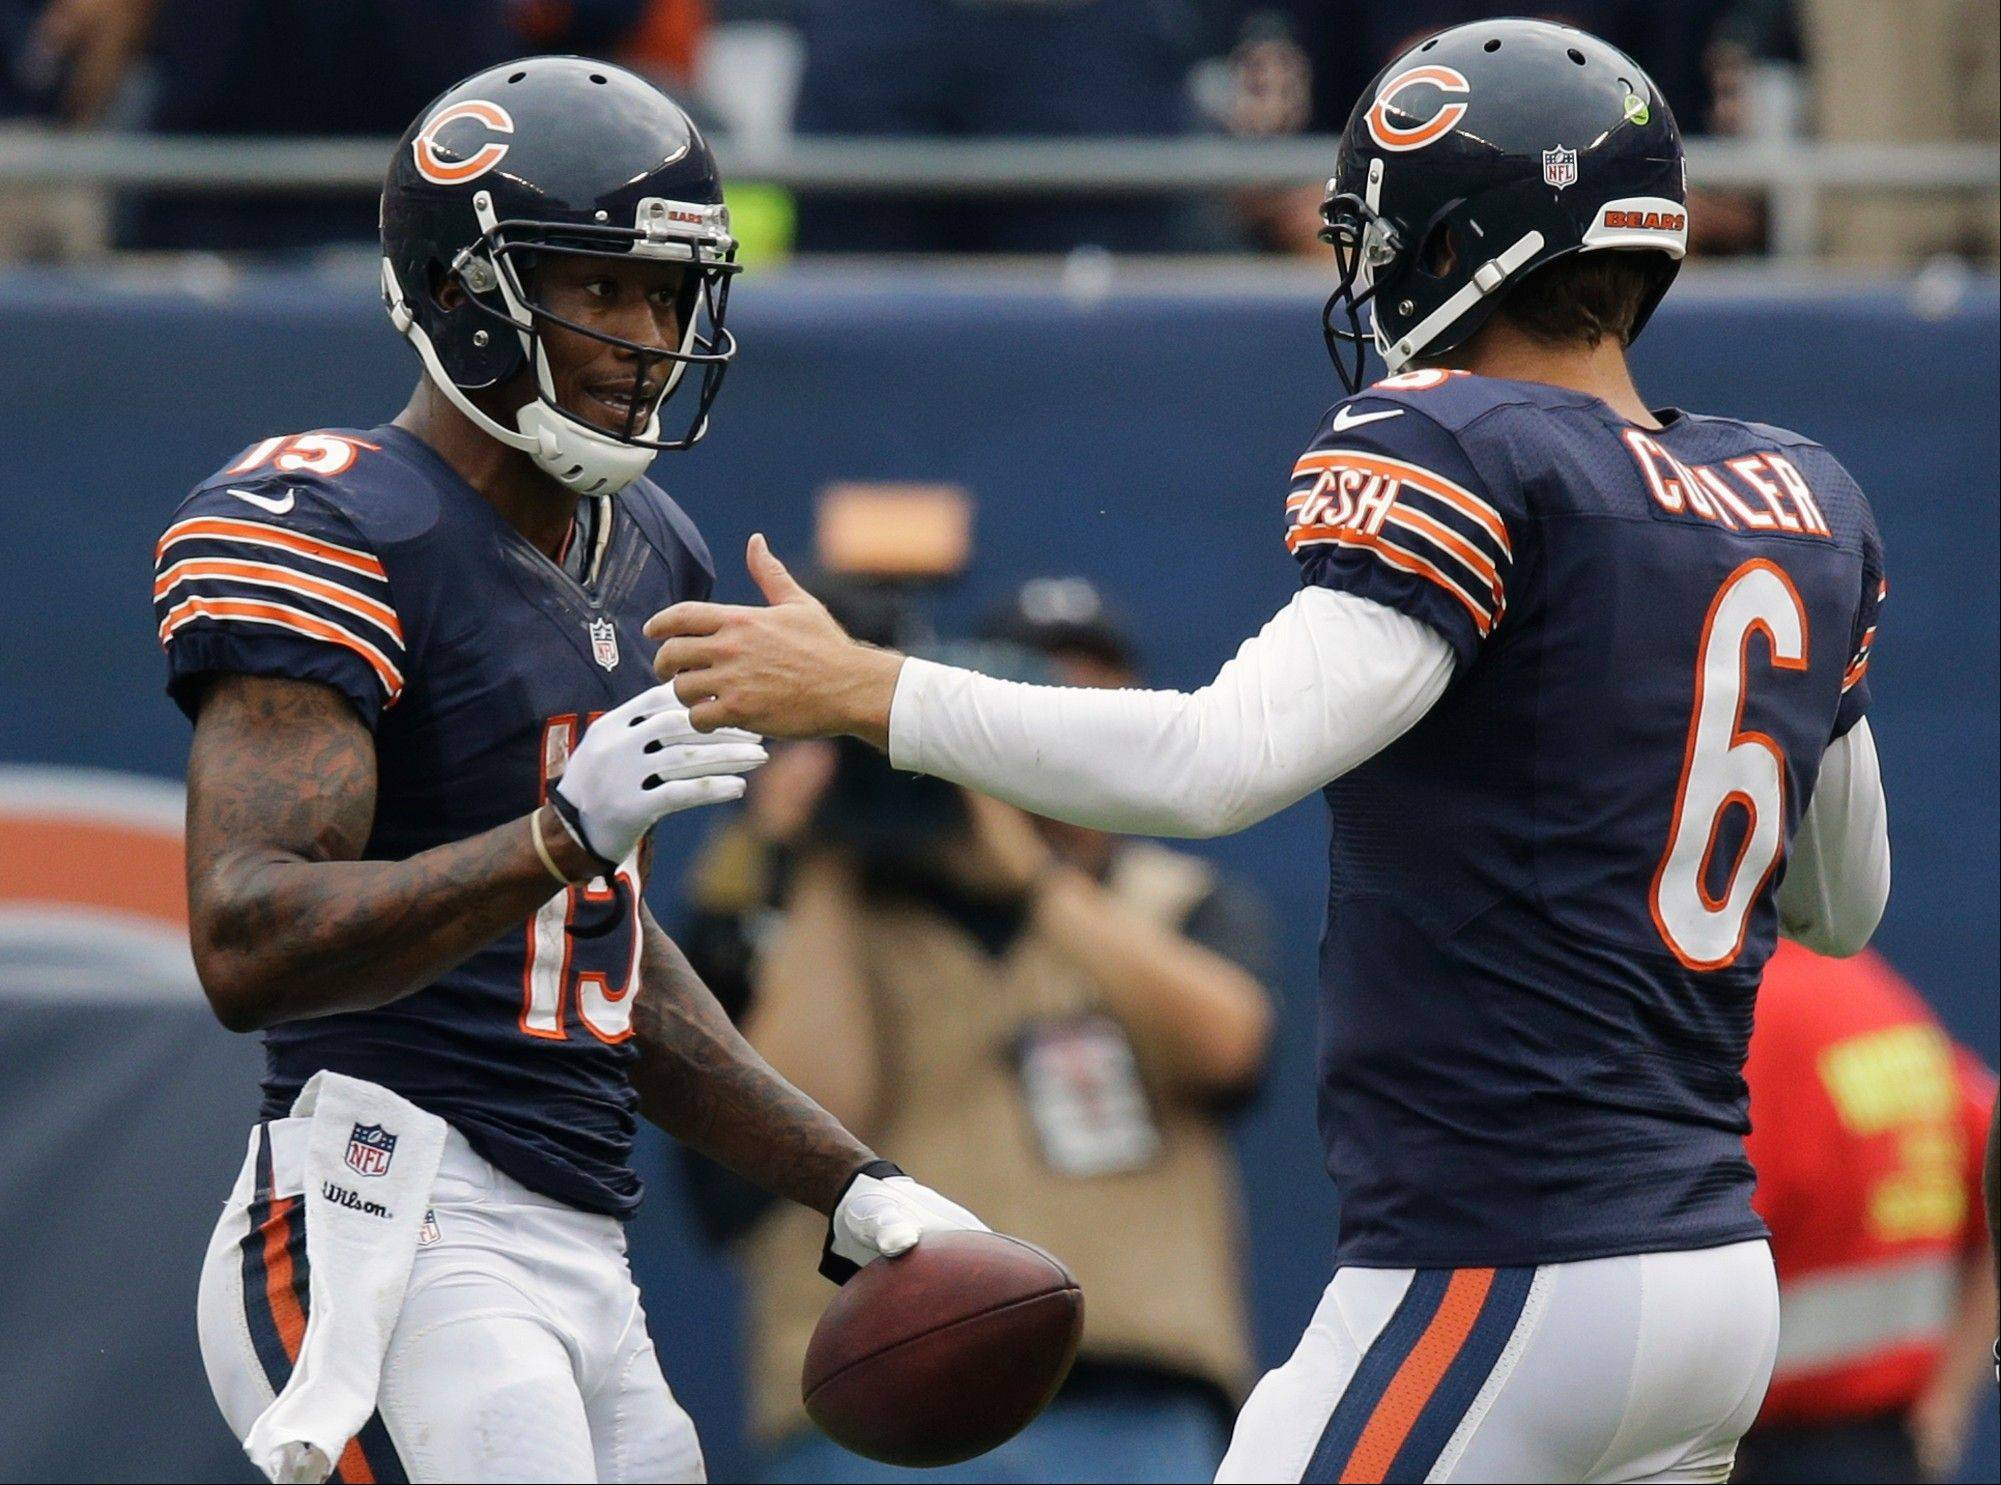 Bears quarterback Jay Cutler (6) was selected again to be one of five captains on the team. Head coach Marc Trestman calls Cutler a key leader.